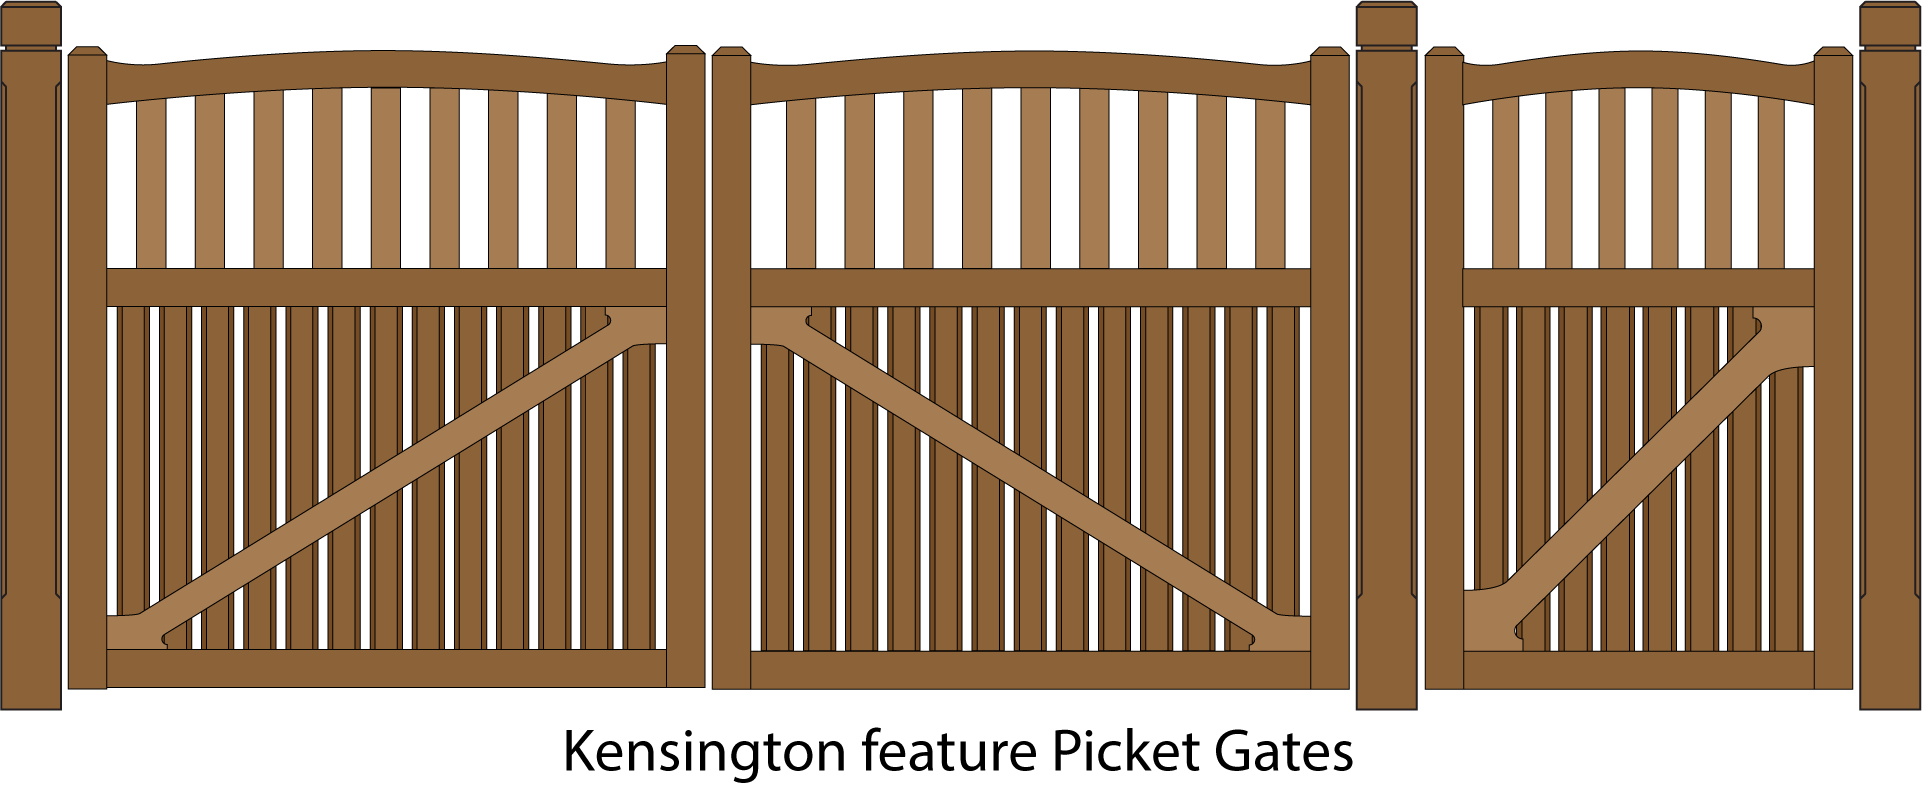 Kensington Feature Picket driveway and pedestrian gates with square chamfered posts